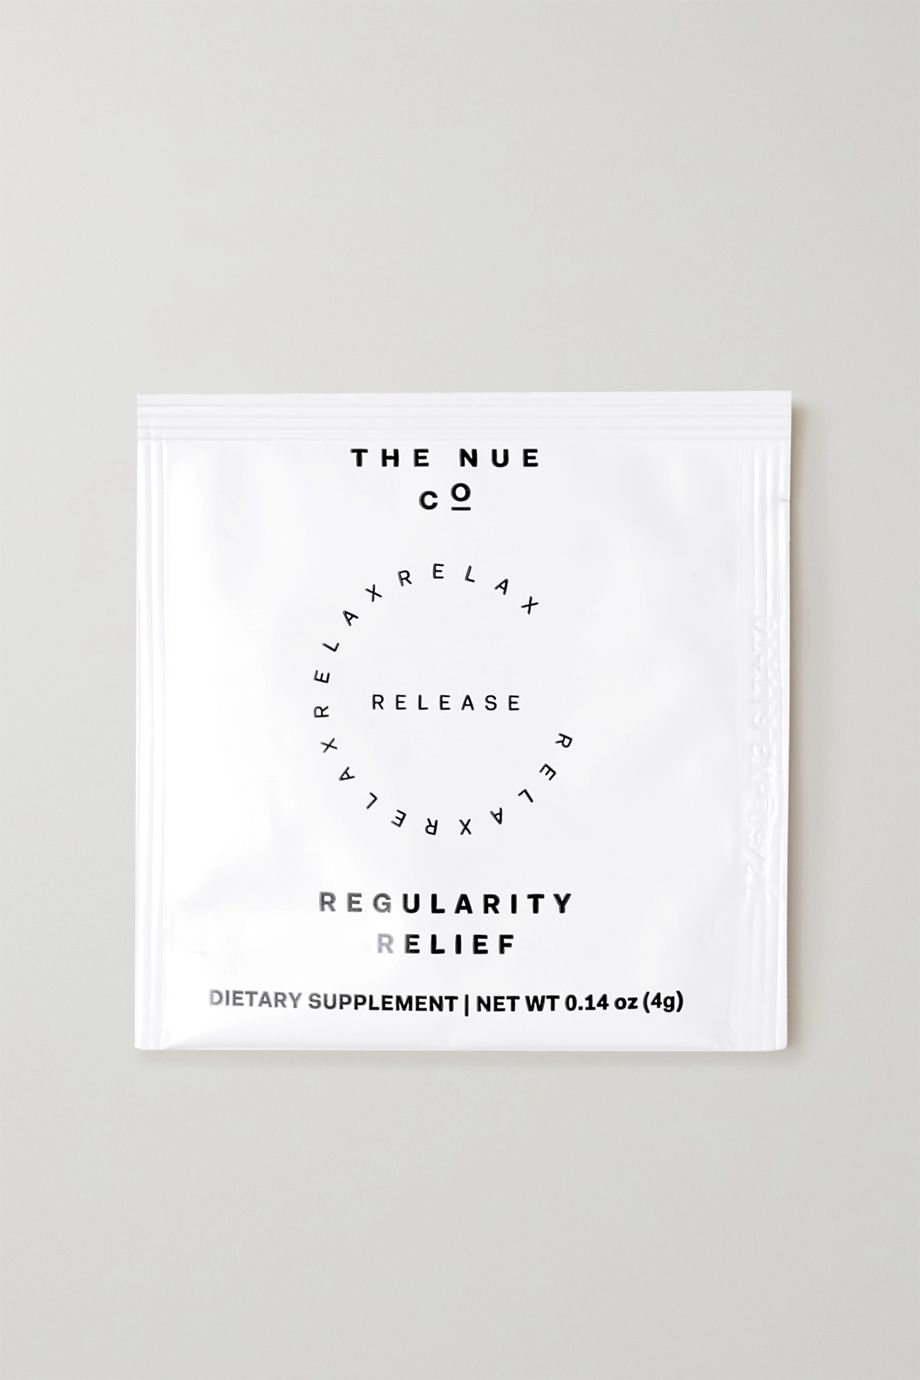 The Nue Co. Regularity Relief - 30 x 4g